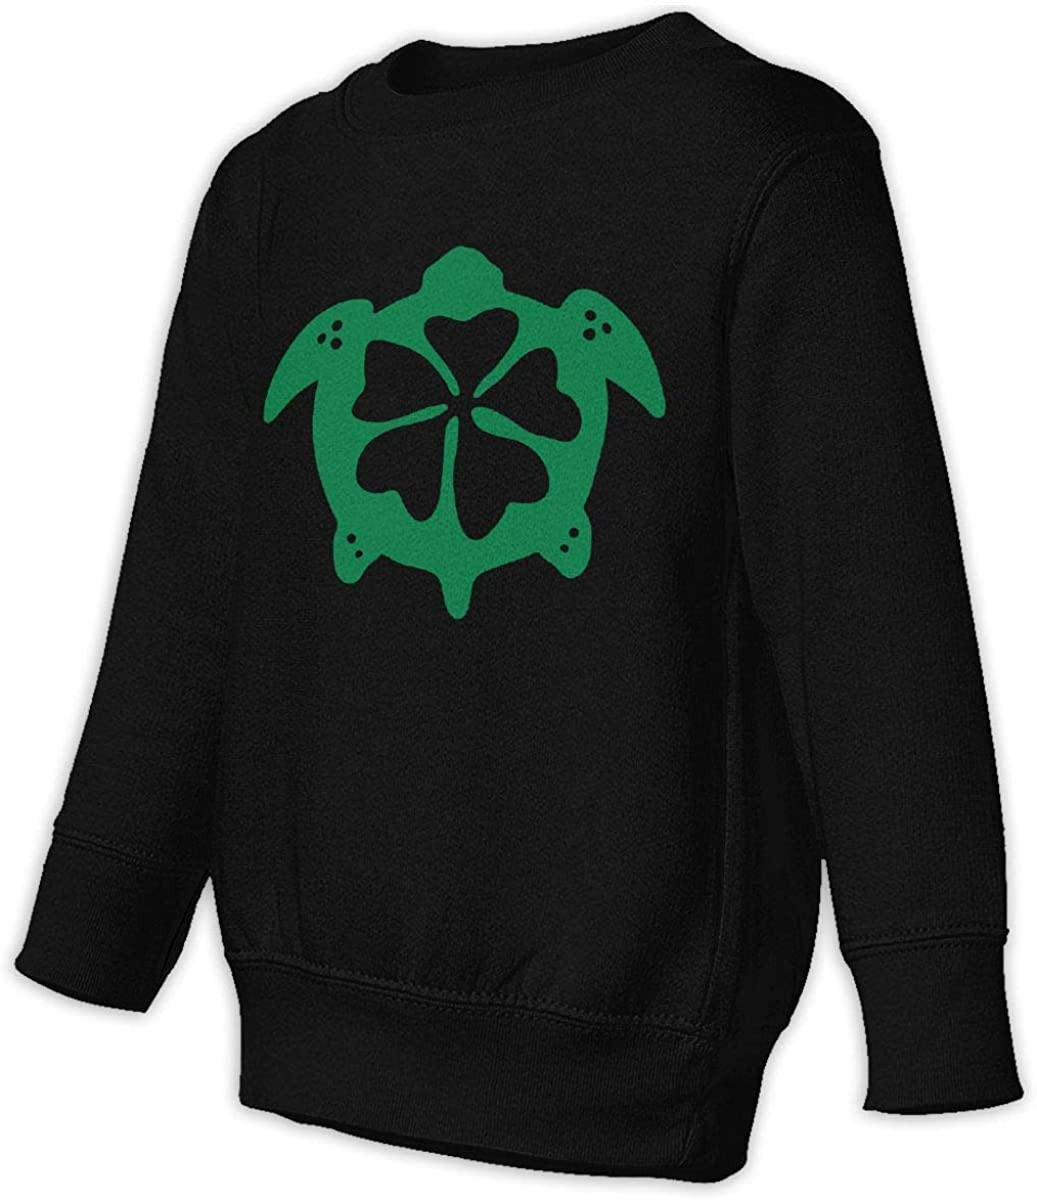 Flower Sea Turtle Hawaii Boys Girls Pullover Sweaters Crewneck Sweatshirts Clothes for 2-6 Years Old Children